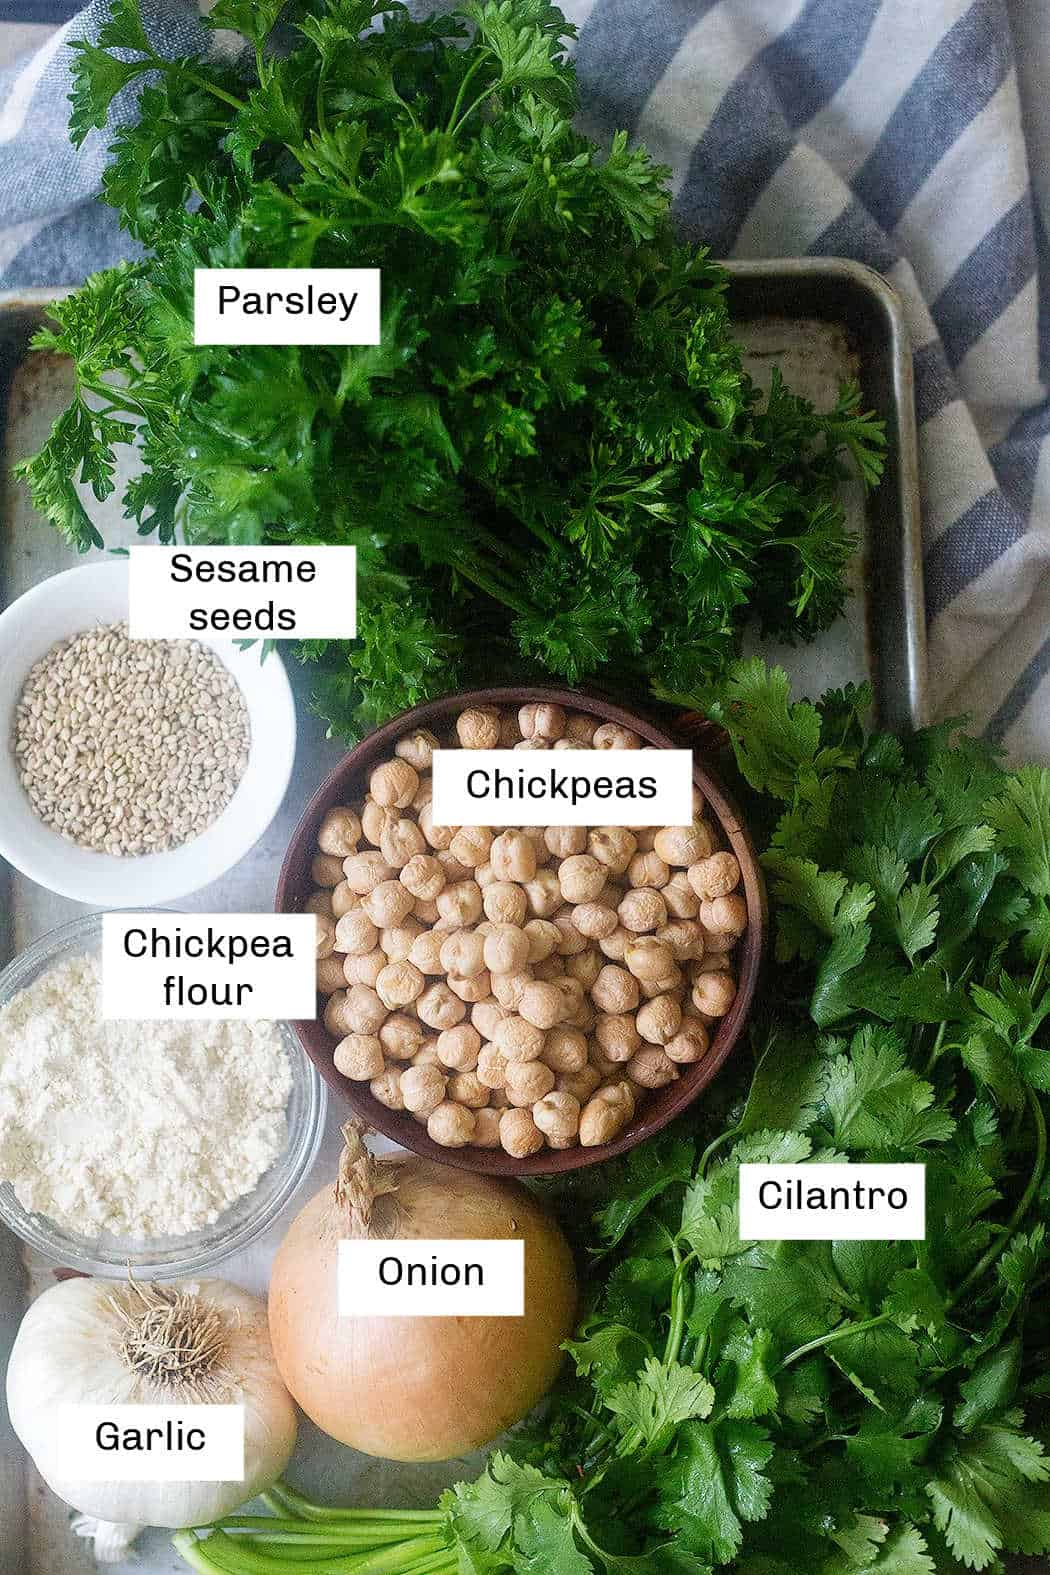 Falafel ingredients are chickpea, parsley, cilantro, onion, garlic, sesame seeds and chickpea flour.